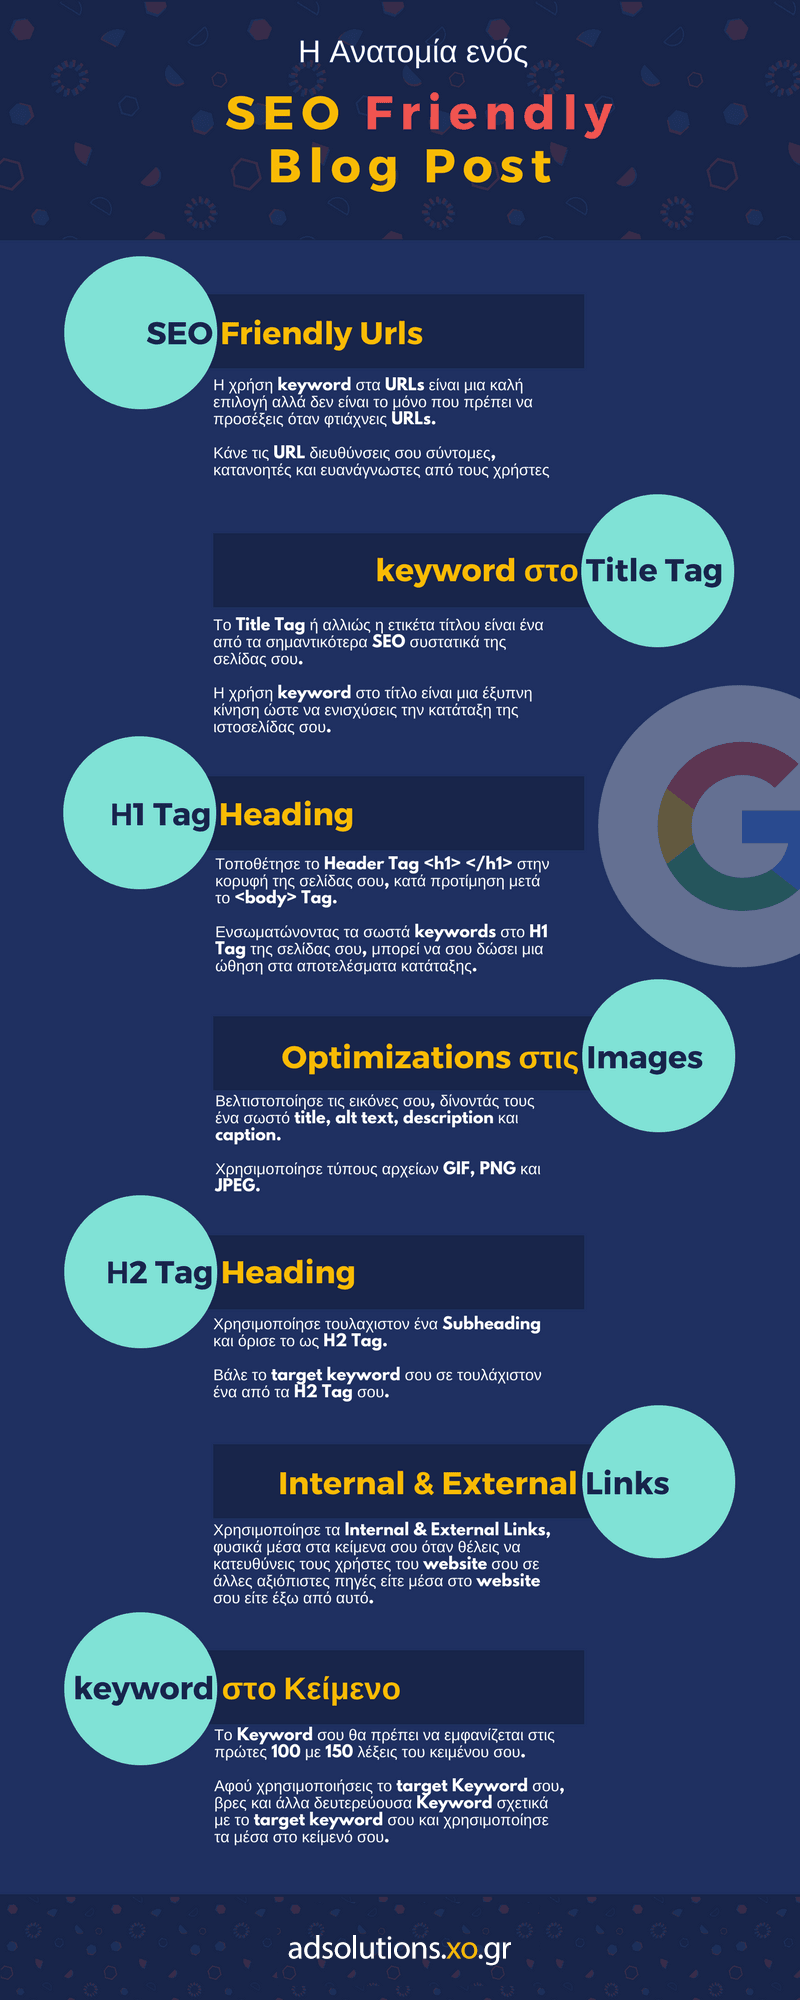 Η Ανατομία ενός SEO Friendly Blog Post [Infographic]